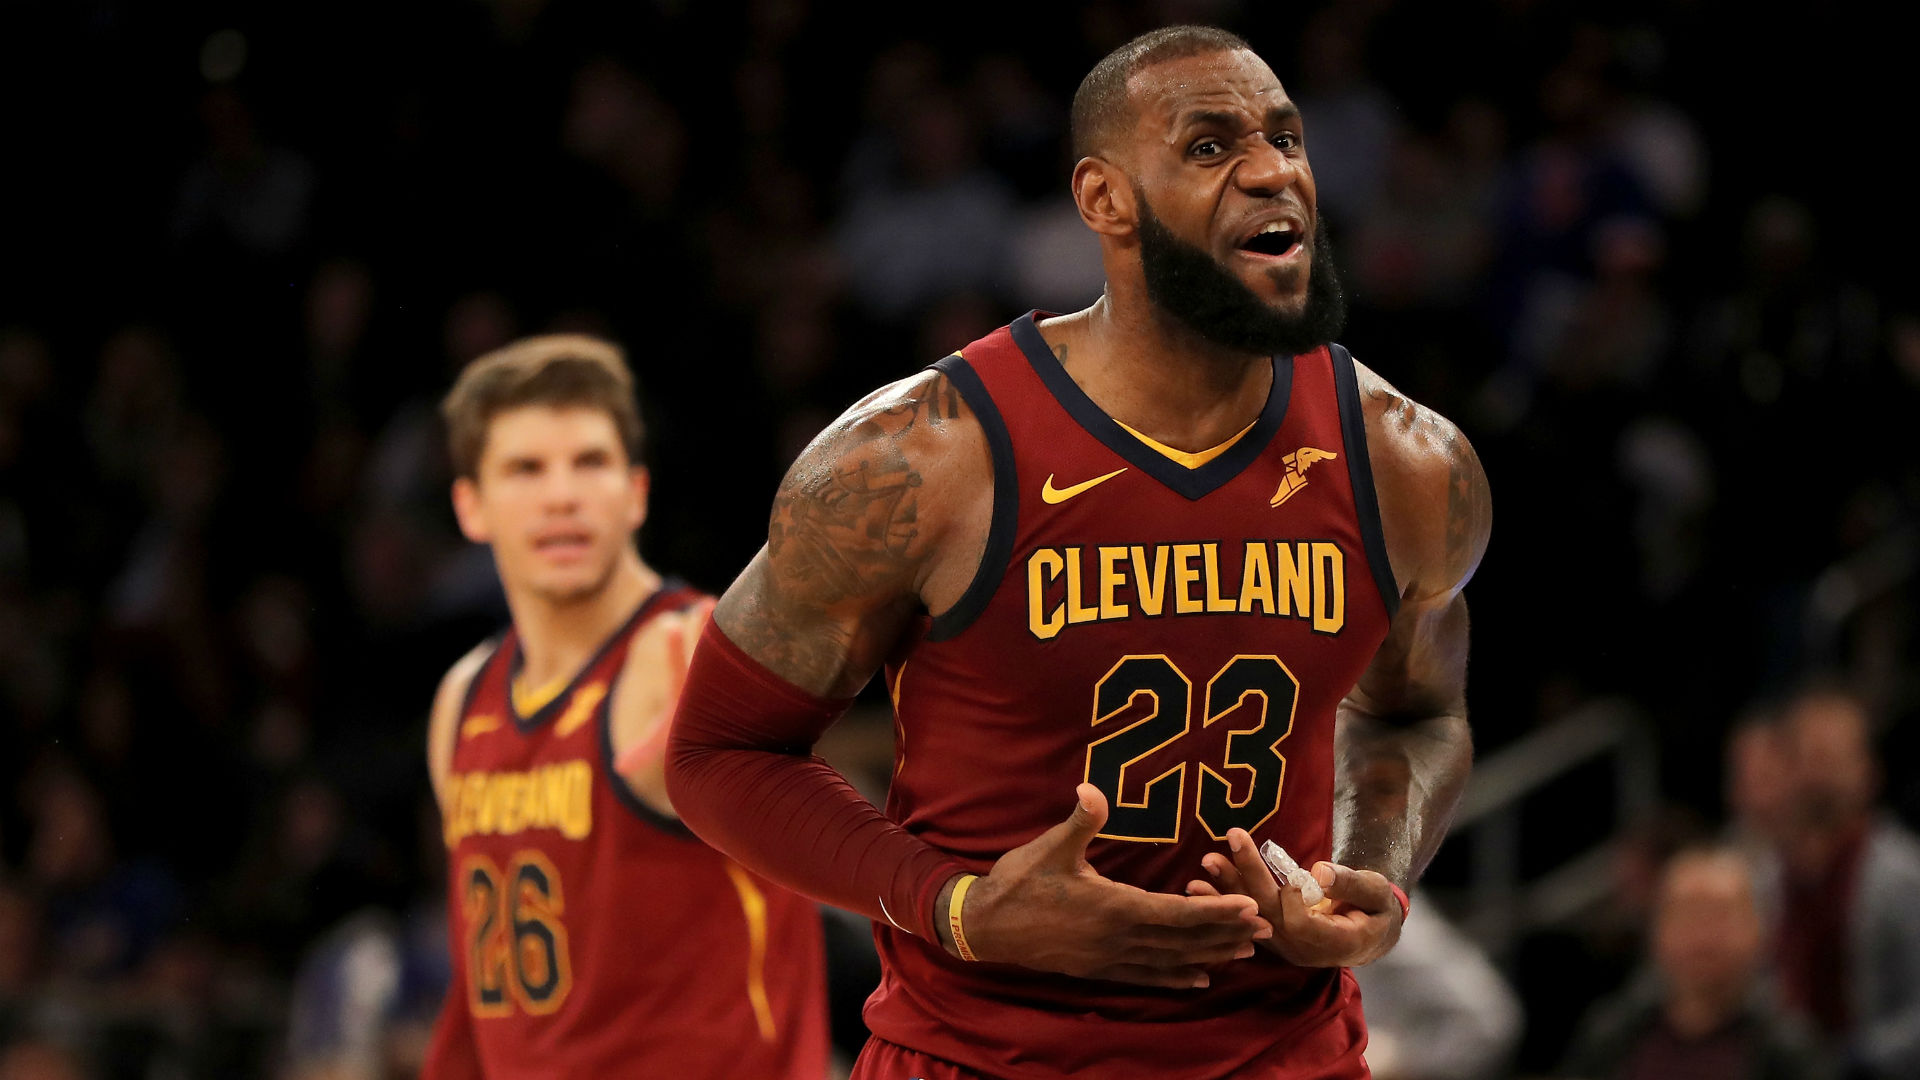 Cleveland's LeBron James plays only 27 minutes in blowout win over Detroit